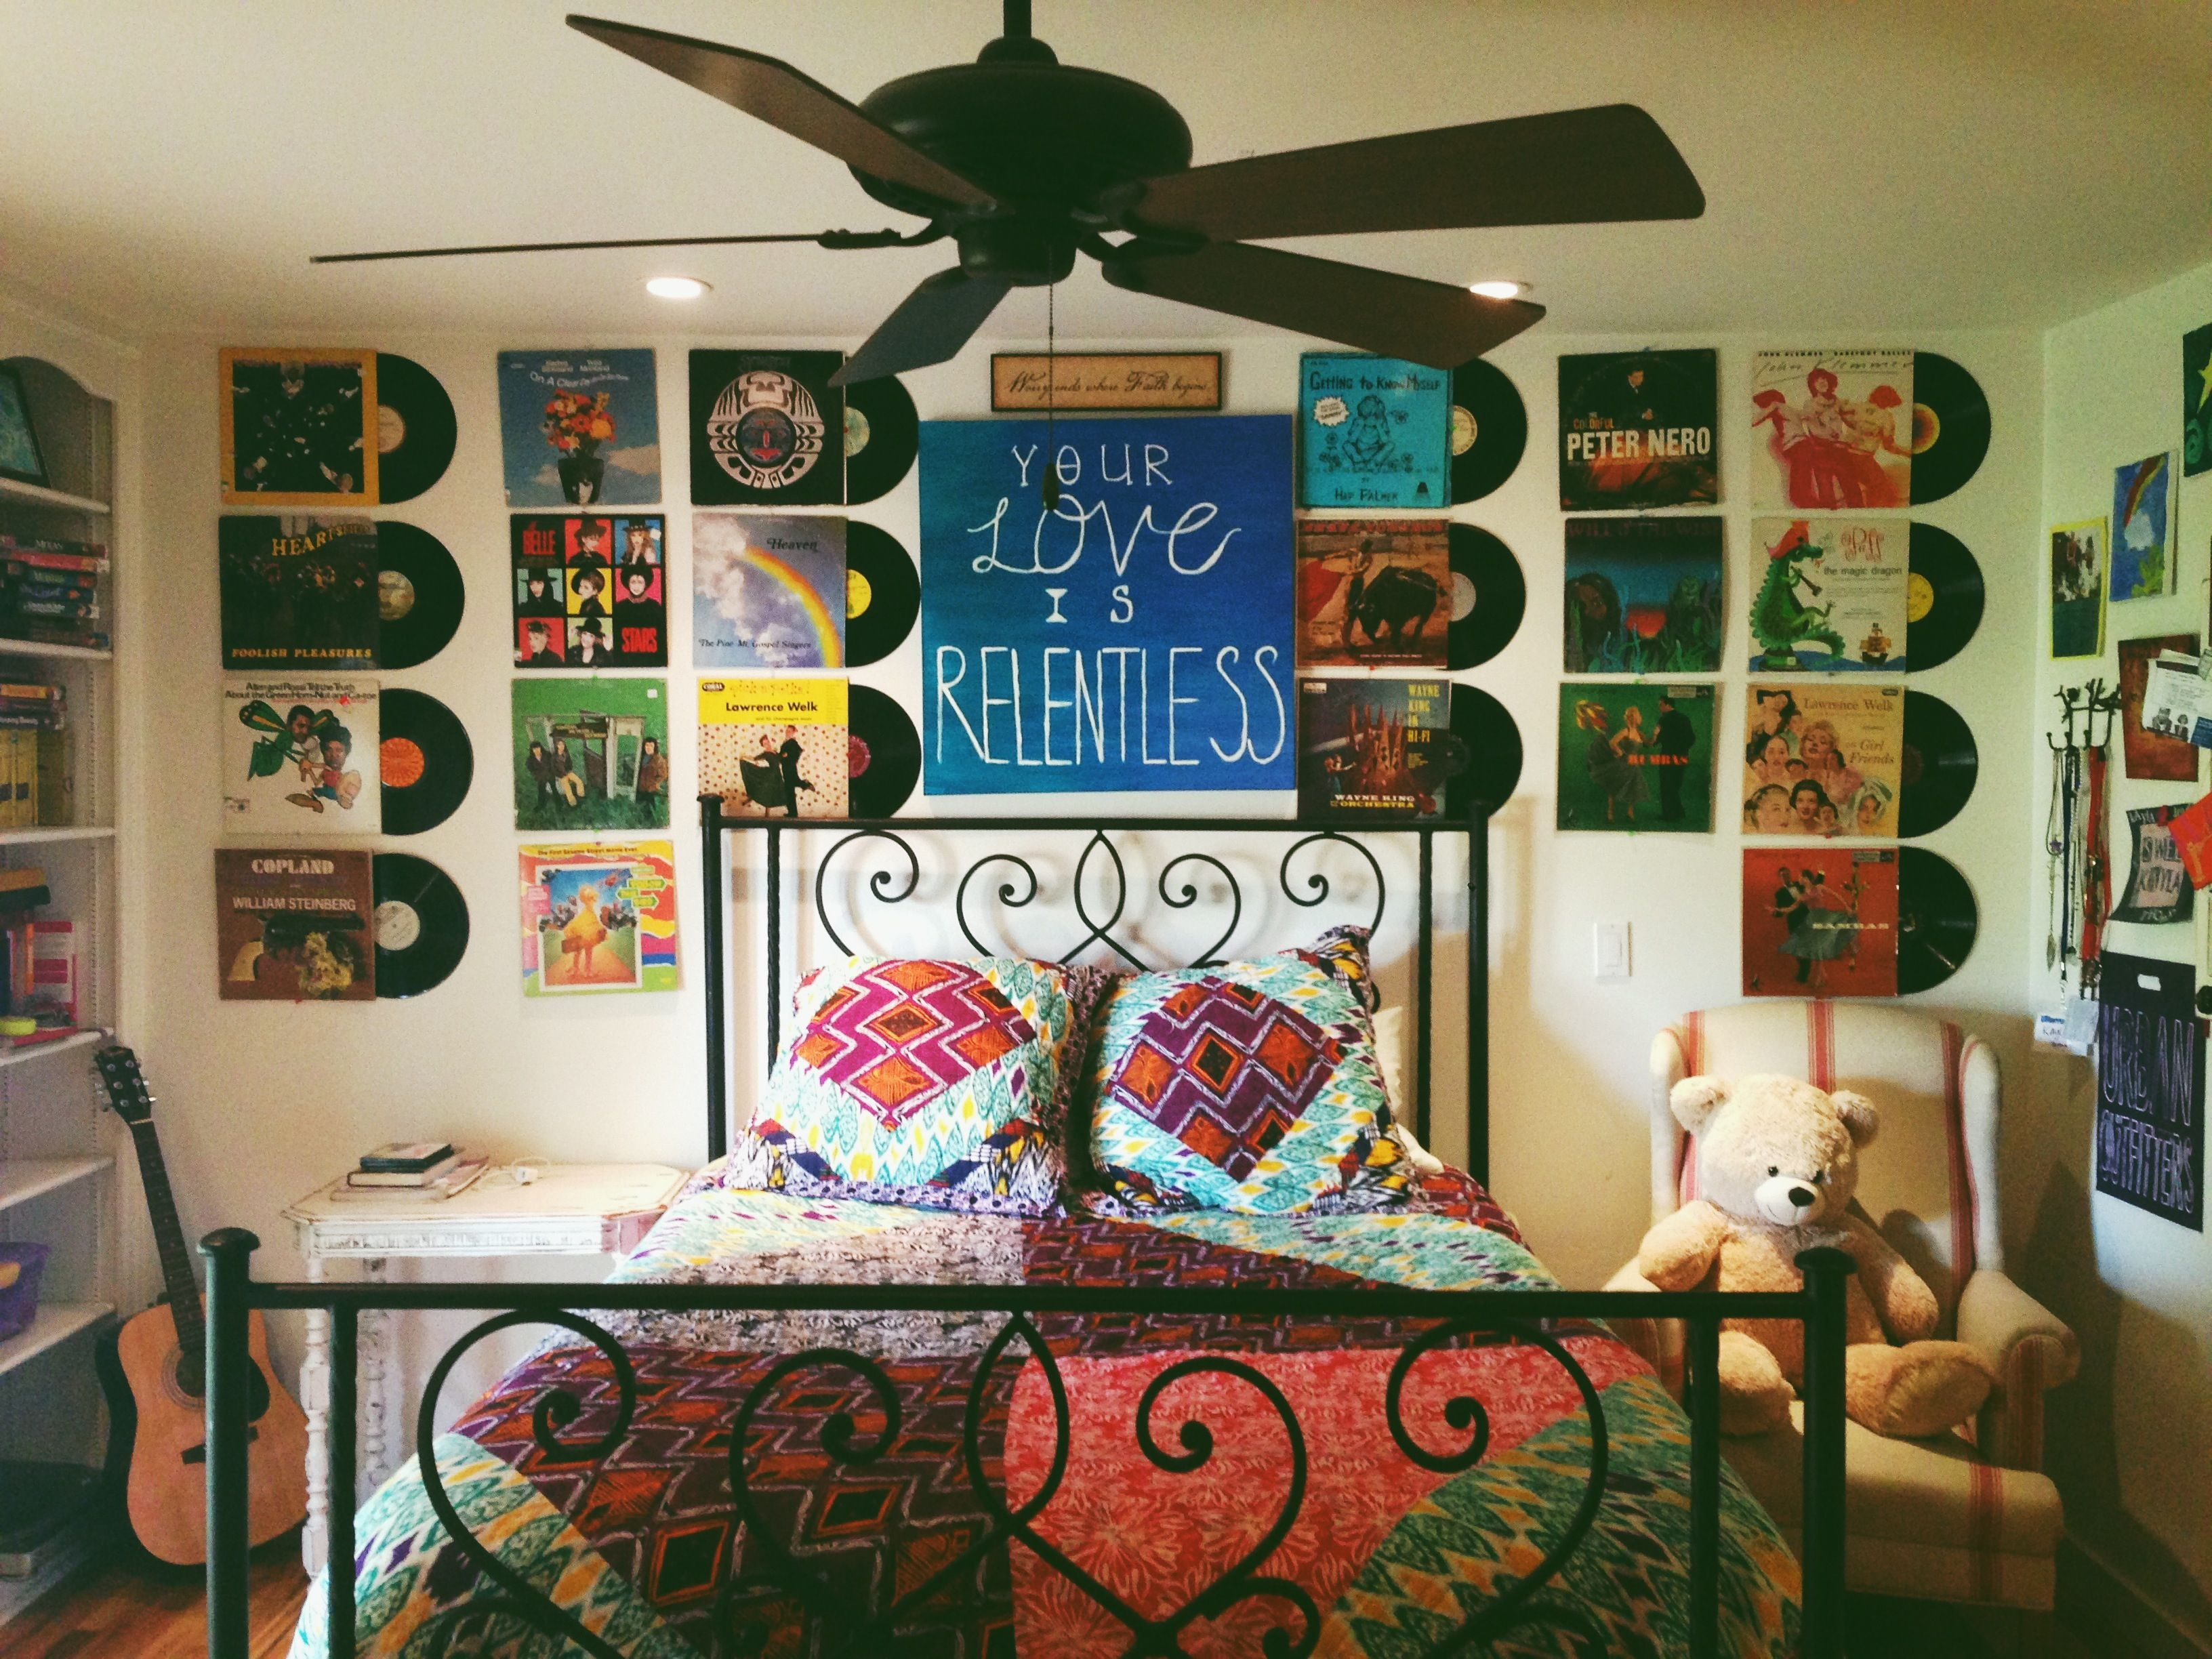 Bedroom Was Covered Art And Old Vinyl Records Now Just Bunch Blank White Walls